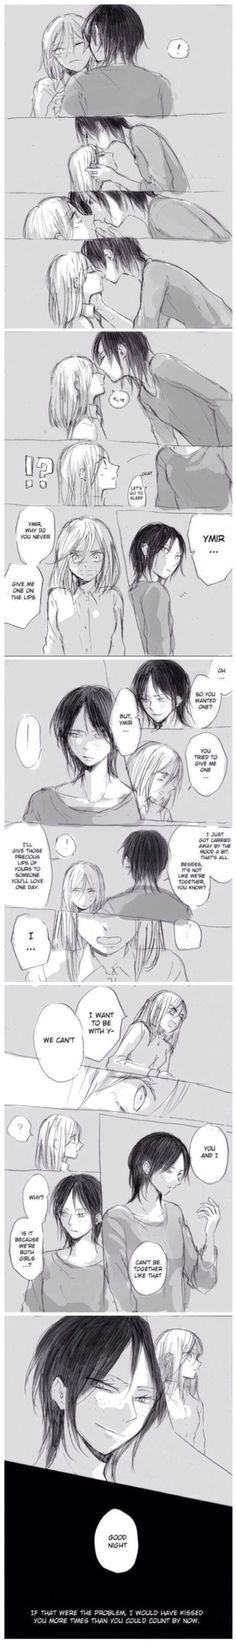 Cute Ymir and Christa